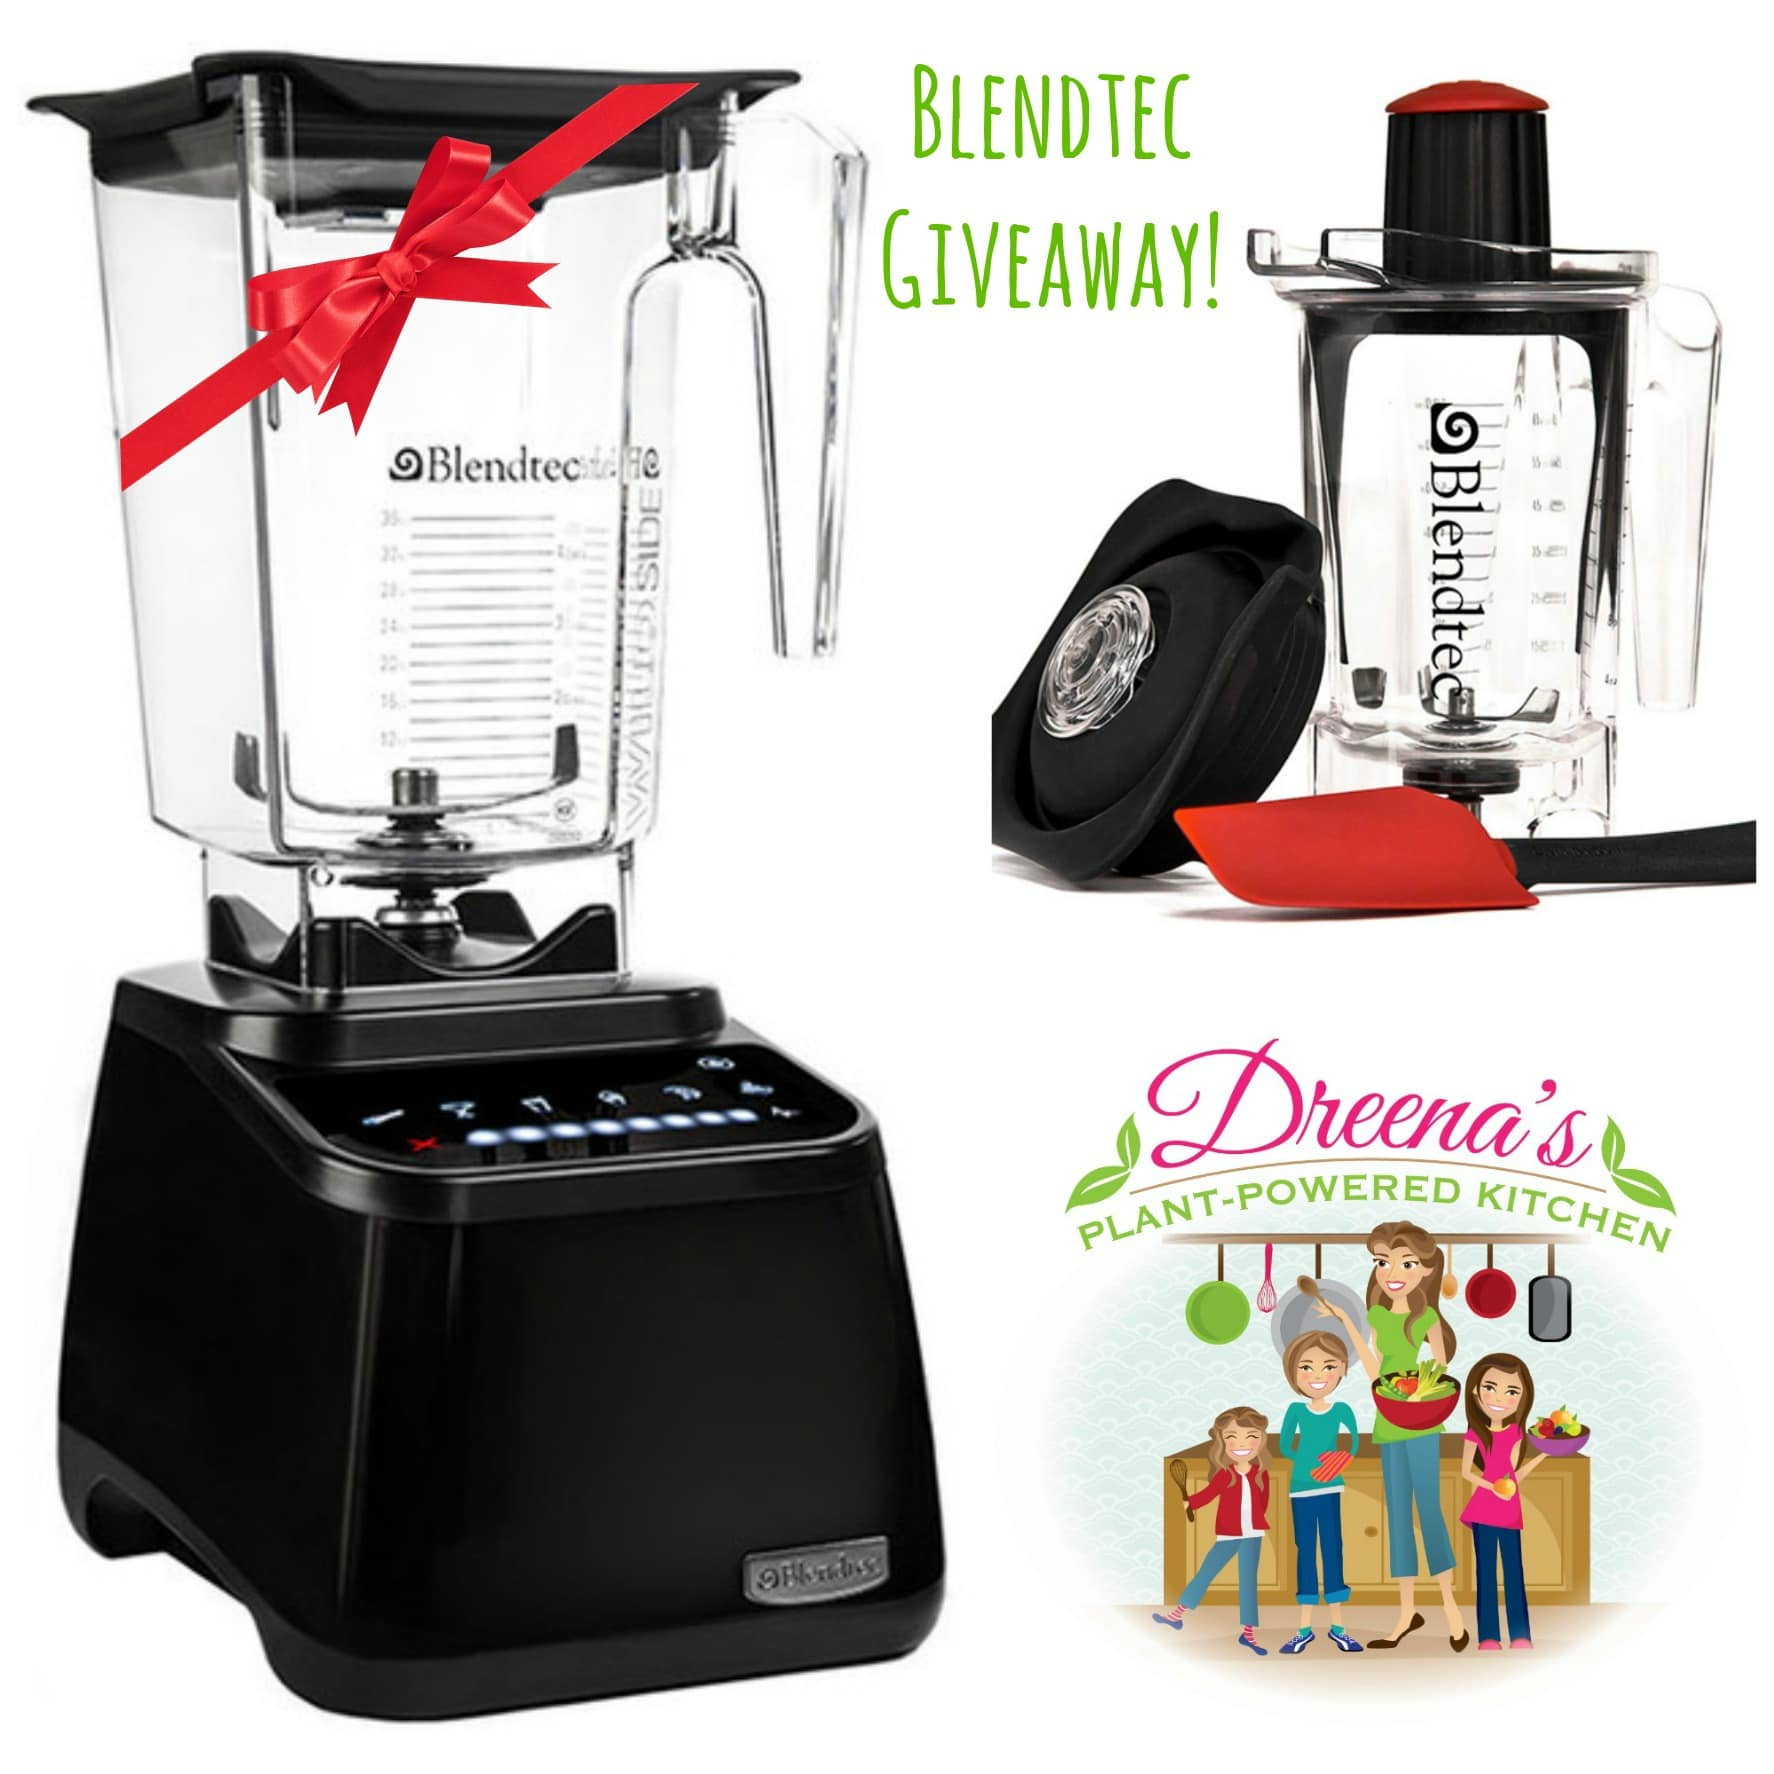 Blendtec Giveaway, Plant-Powered Kitchen